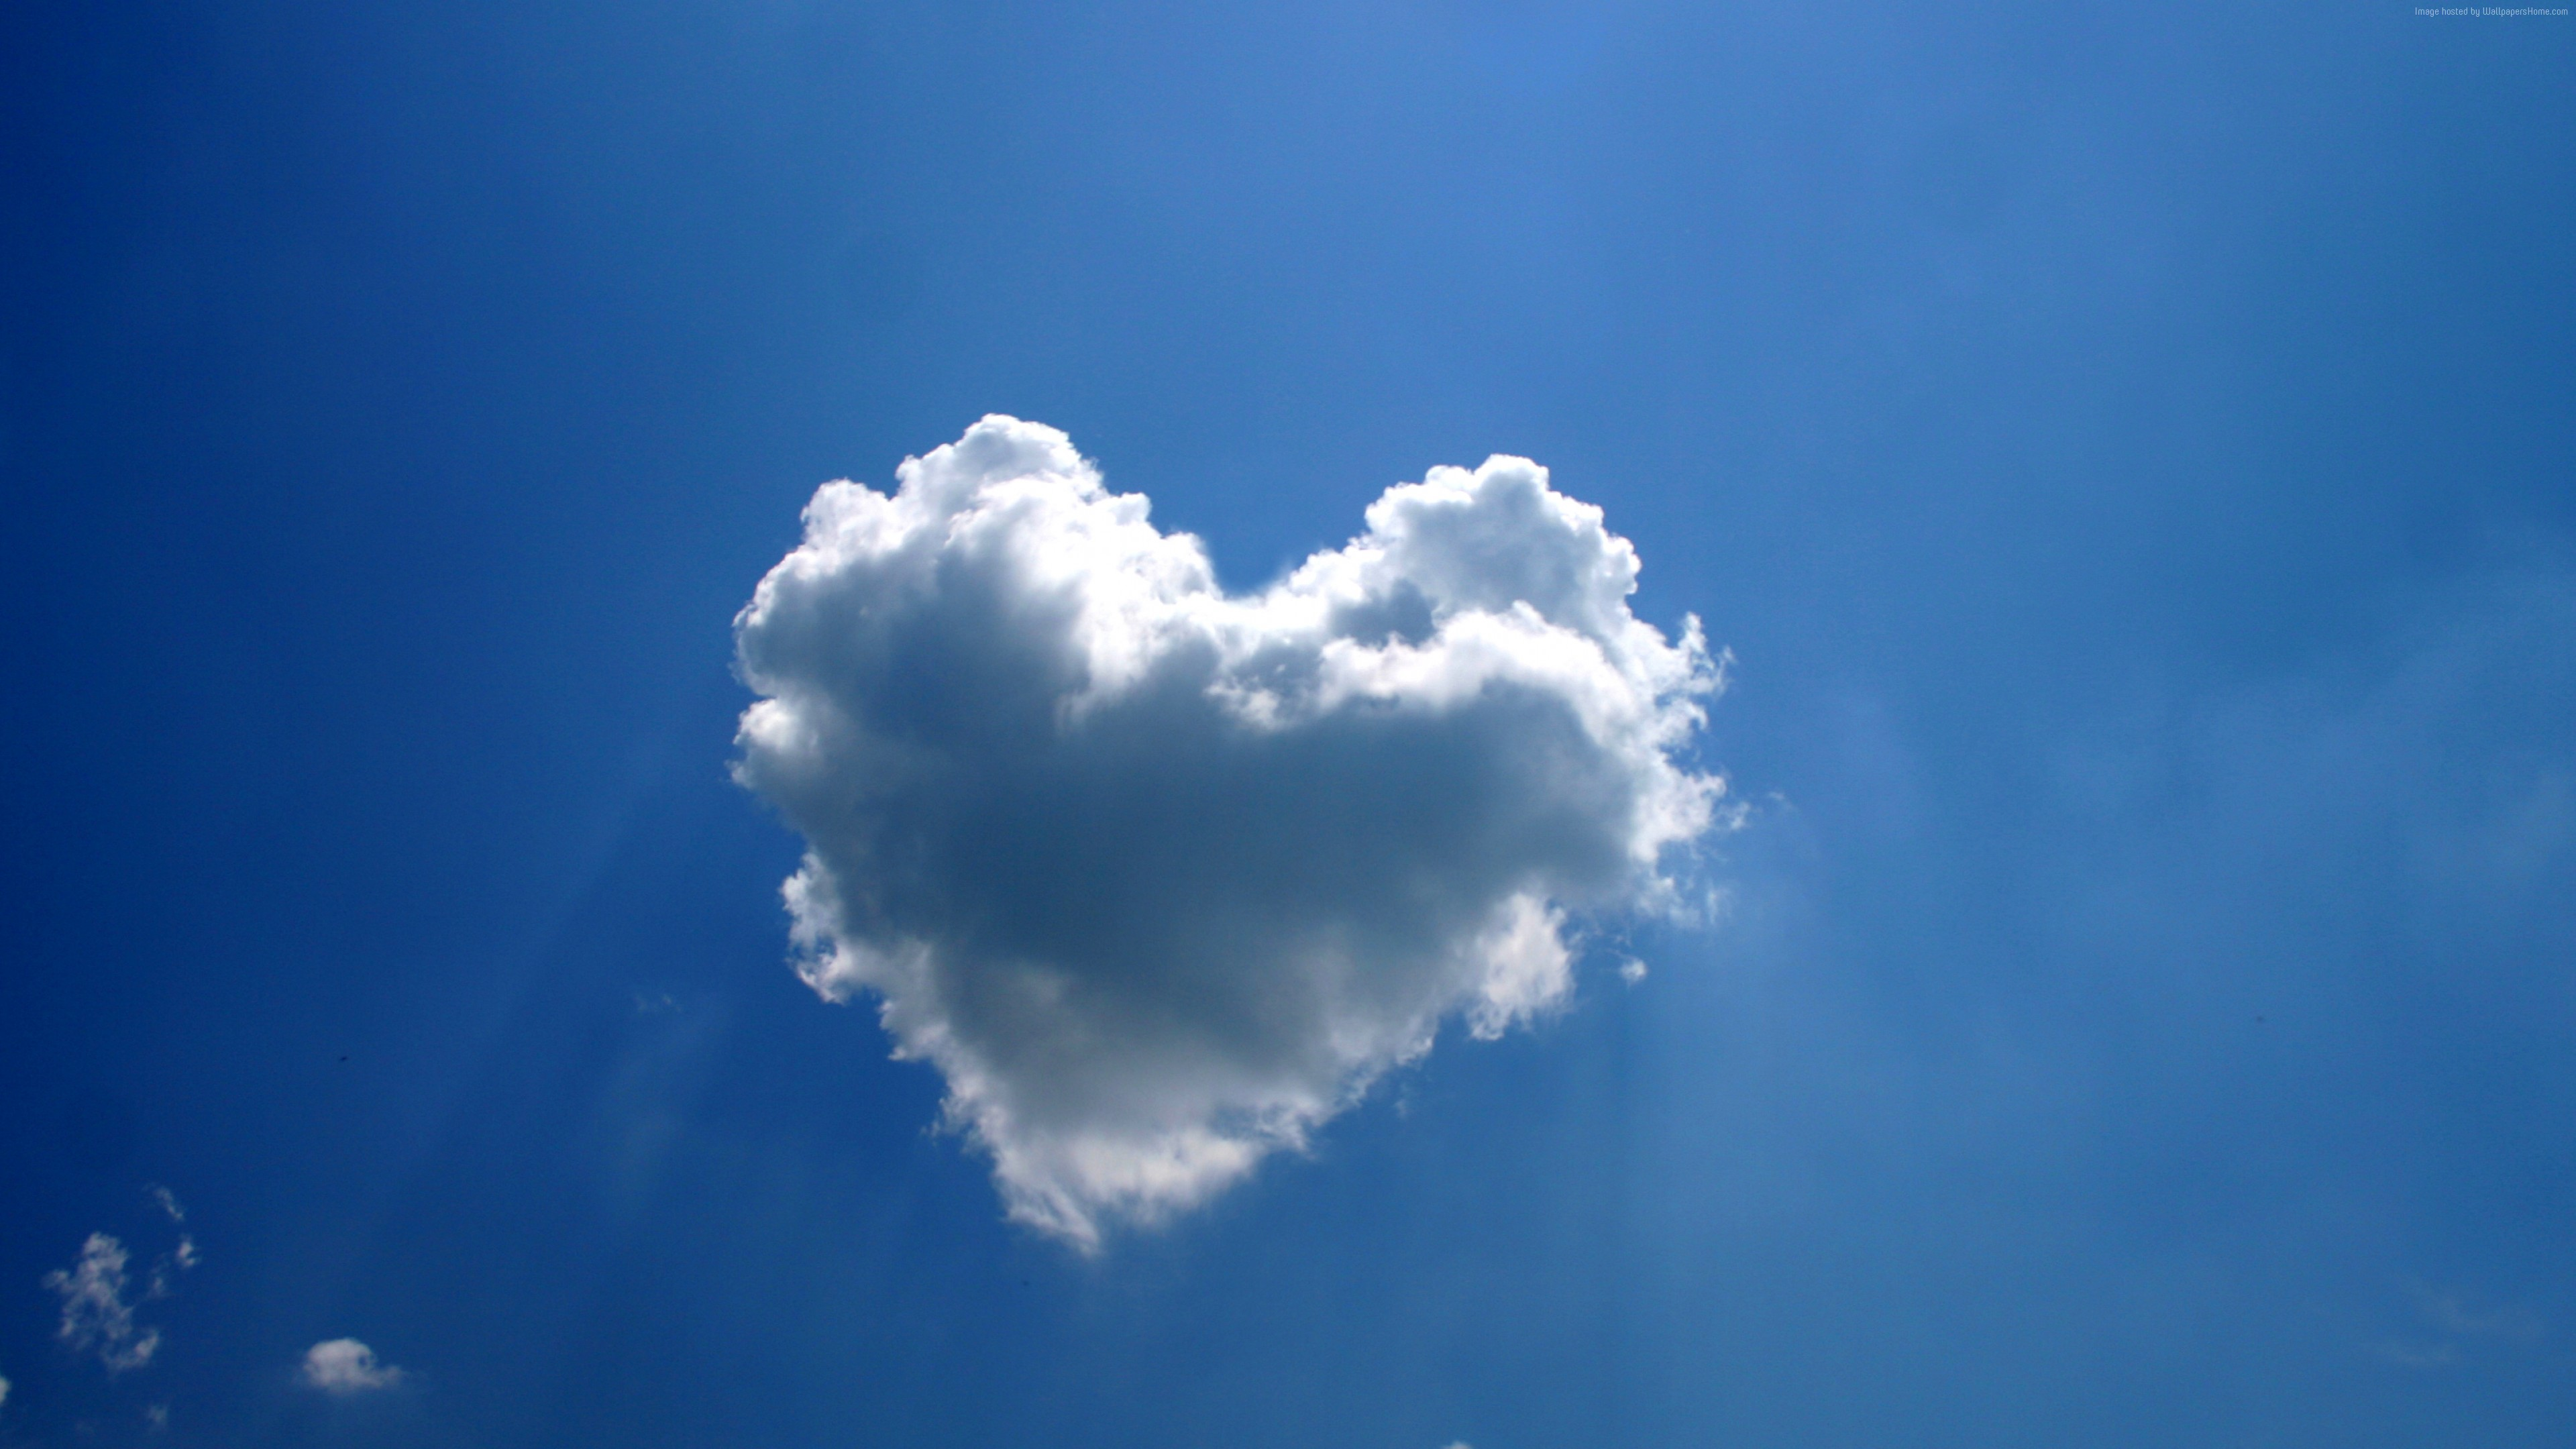 Stock Images love image, heart, clouds, 4k, Stock Images